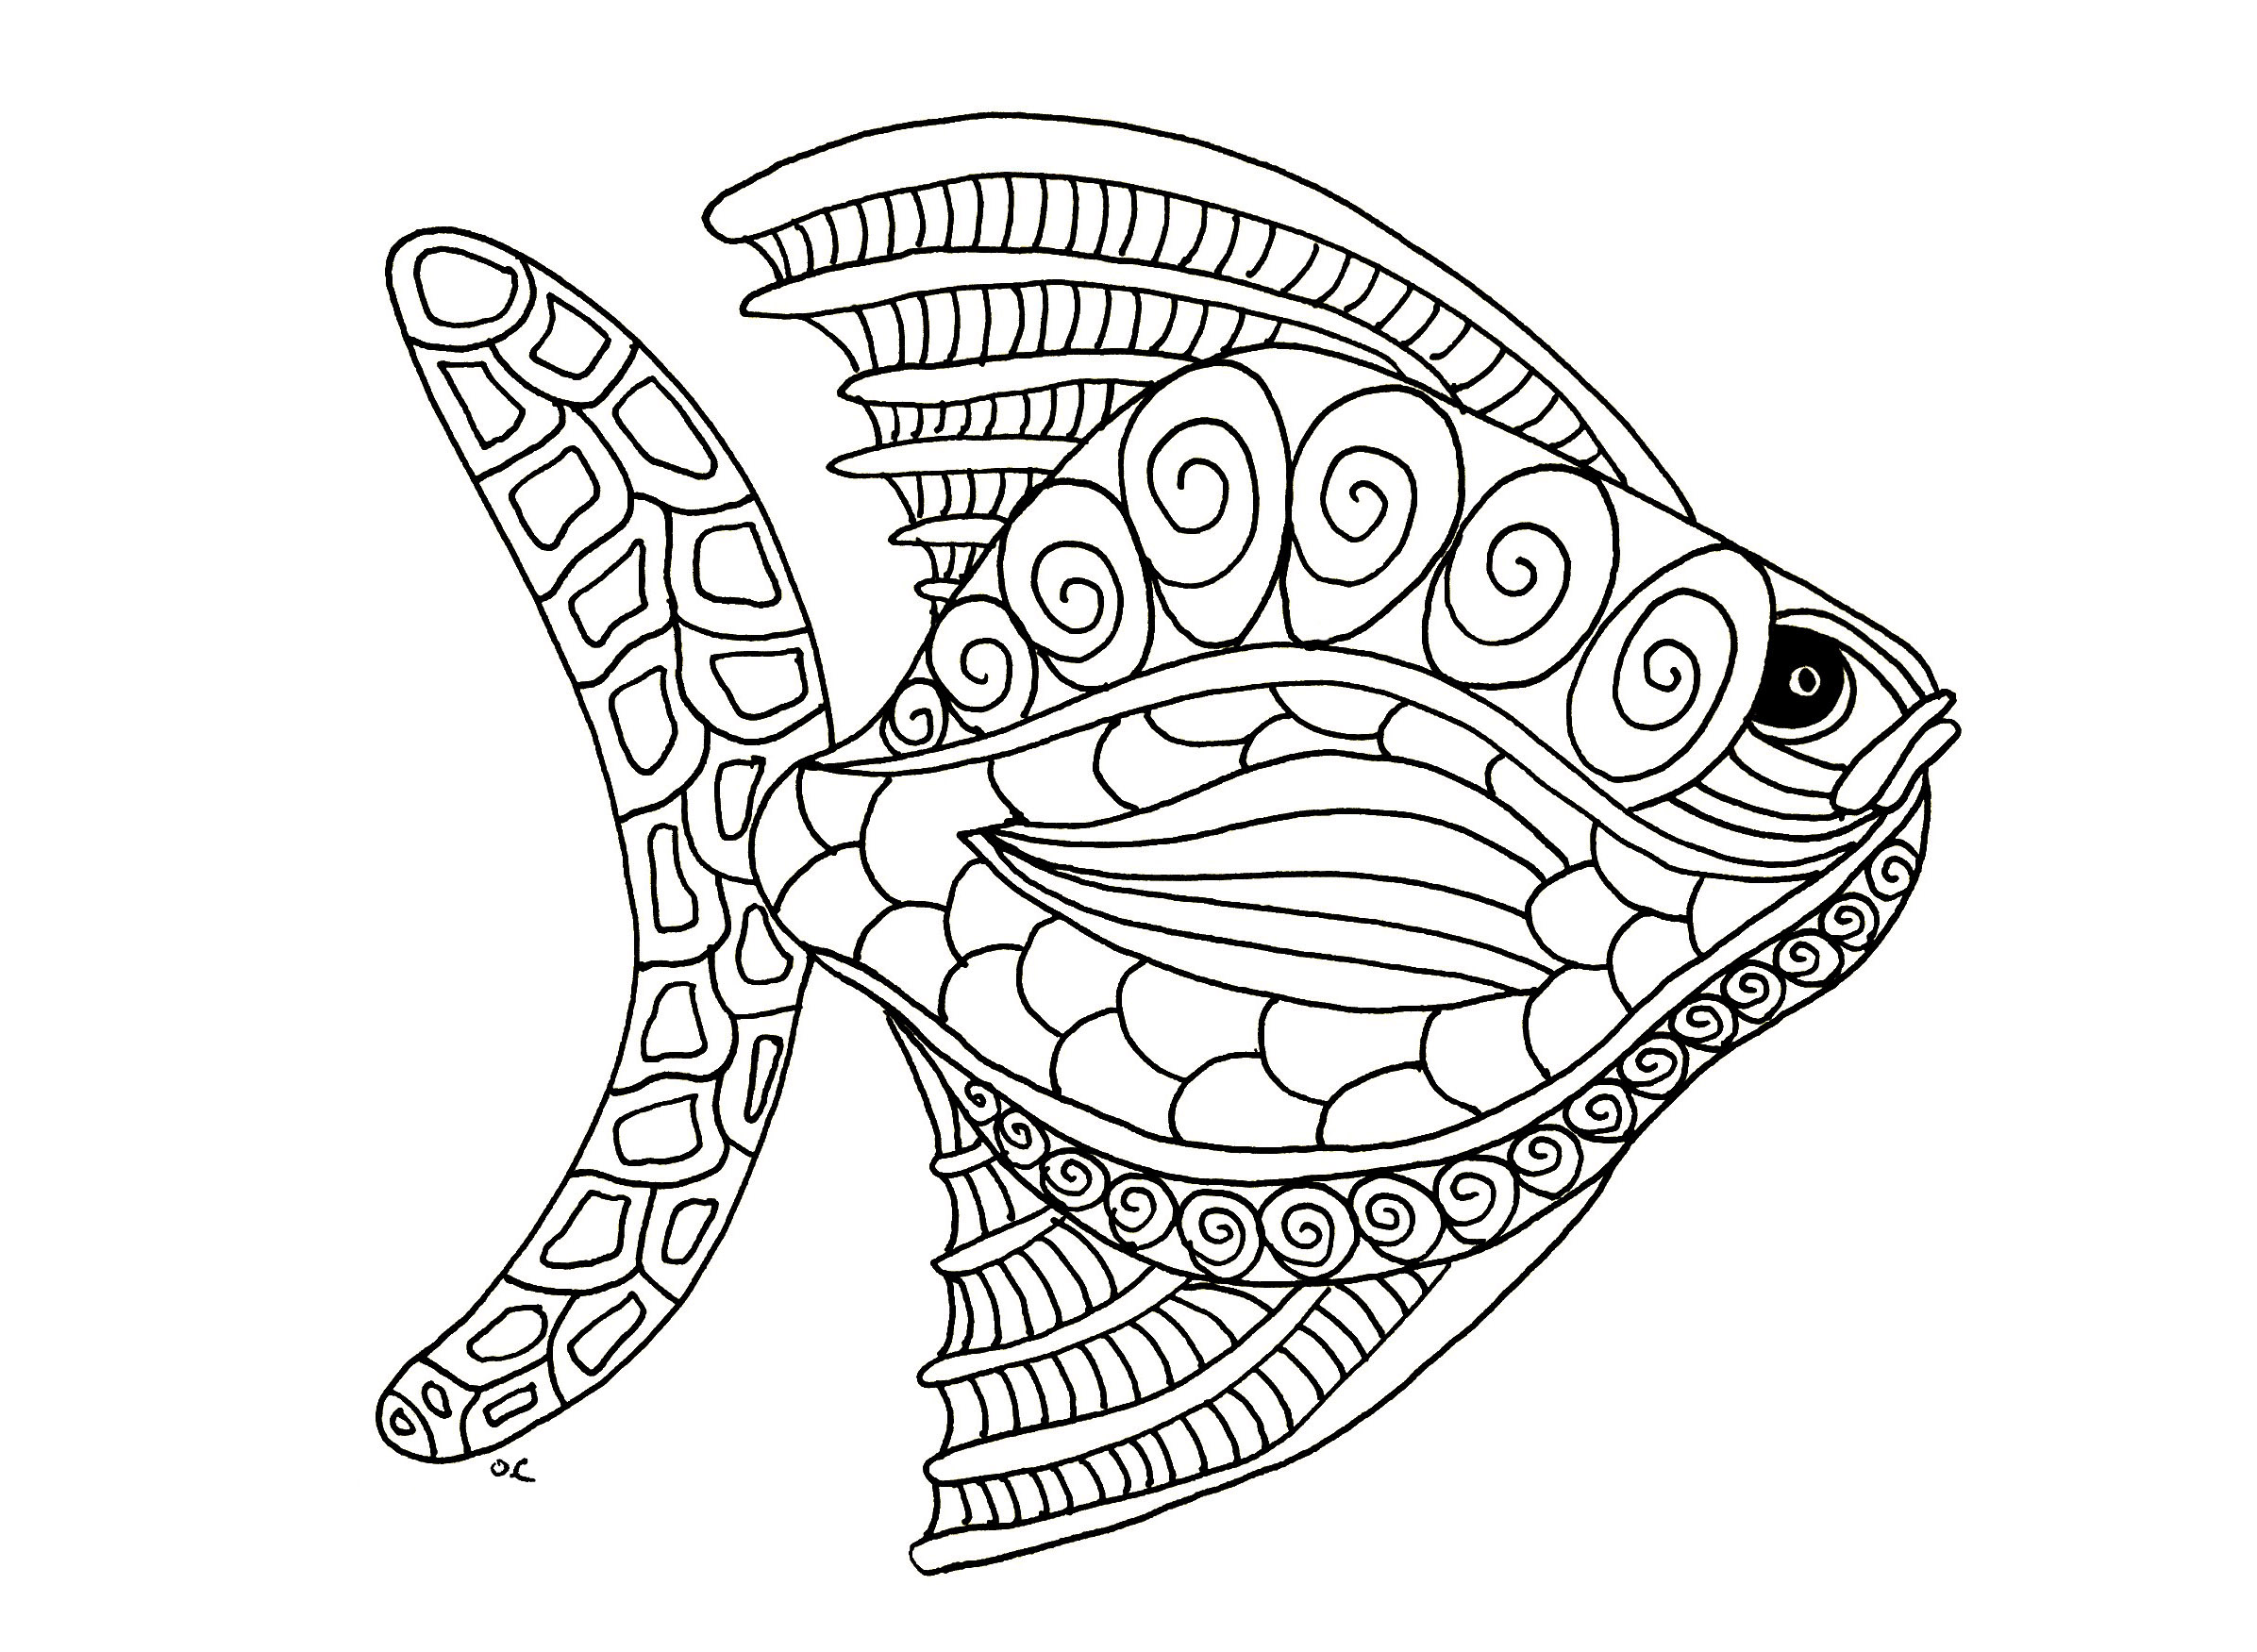 Pisces coloring page to download for free